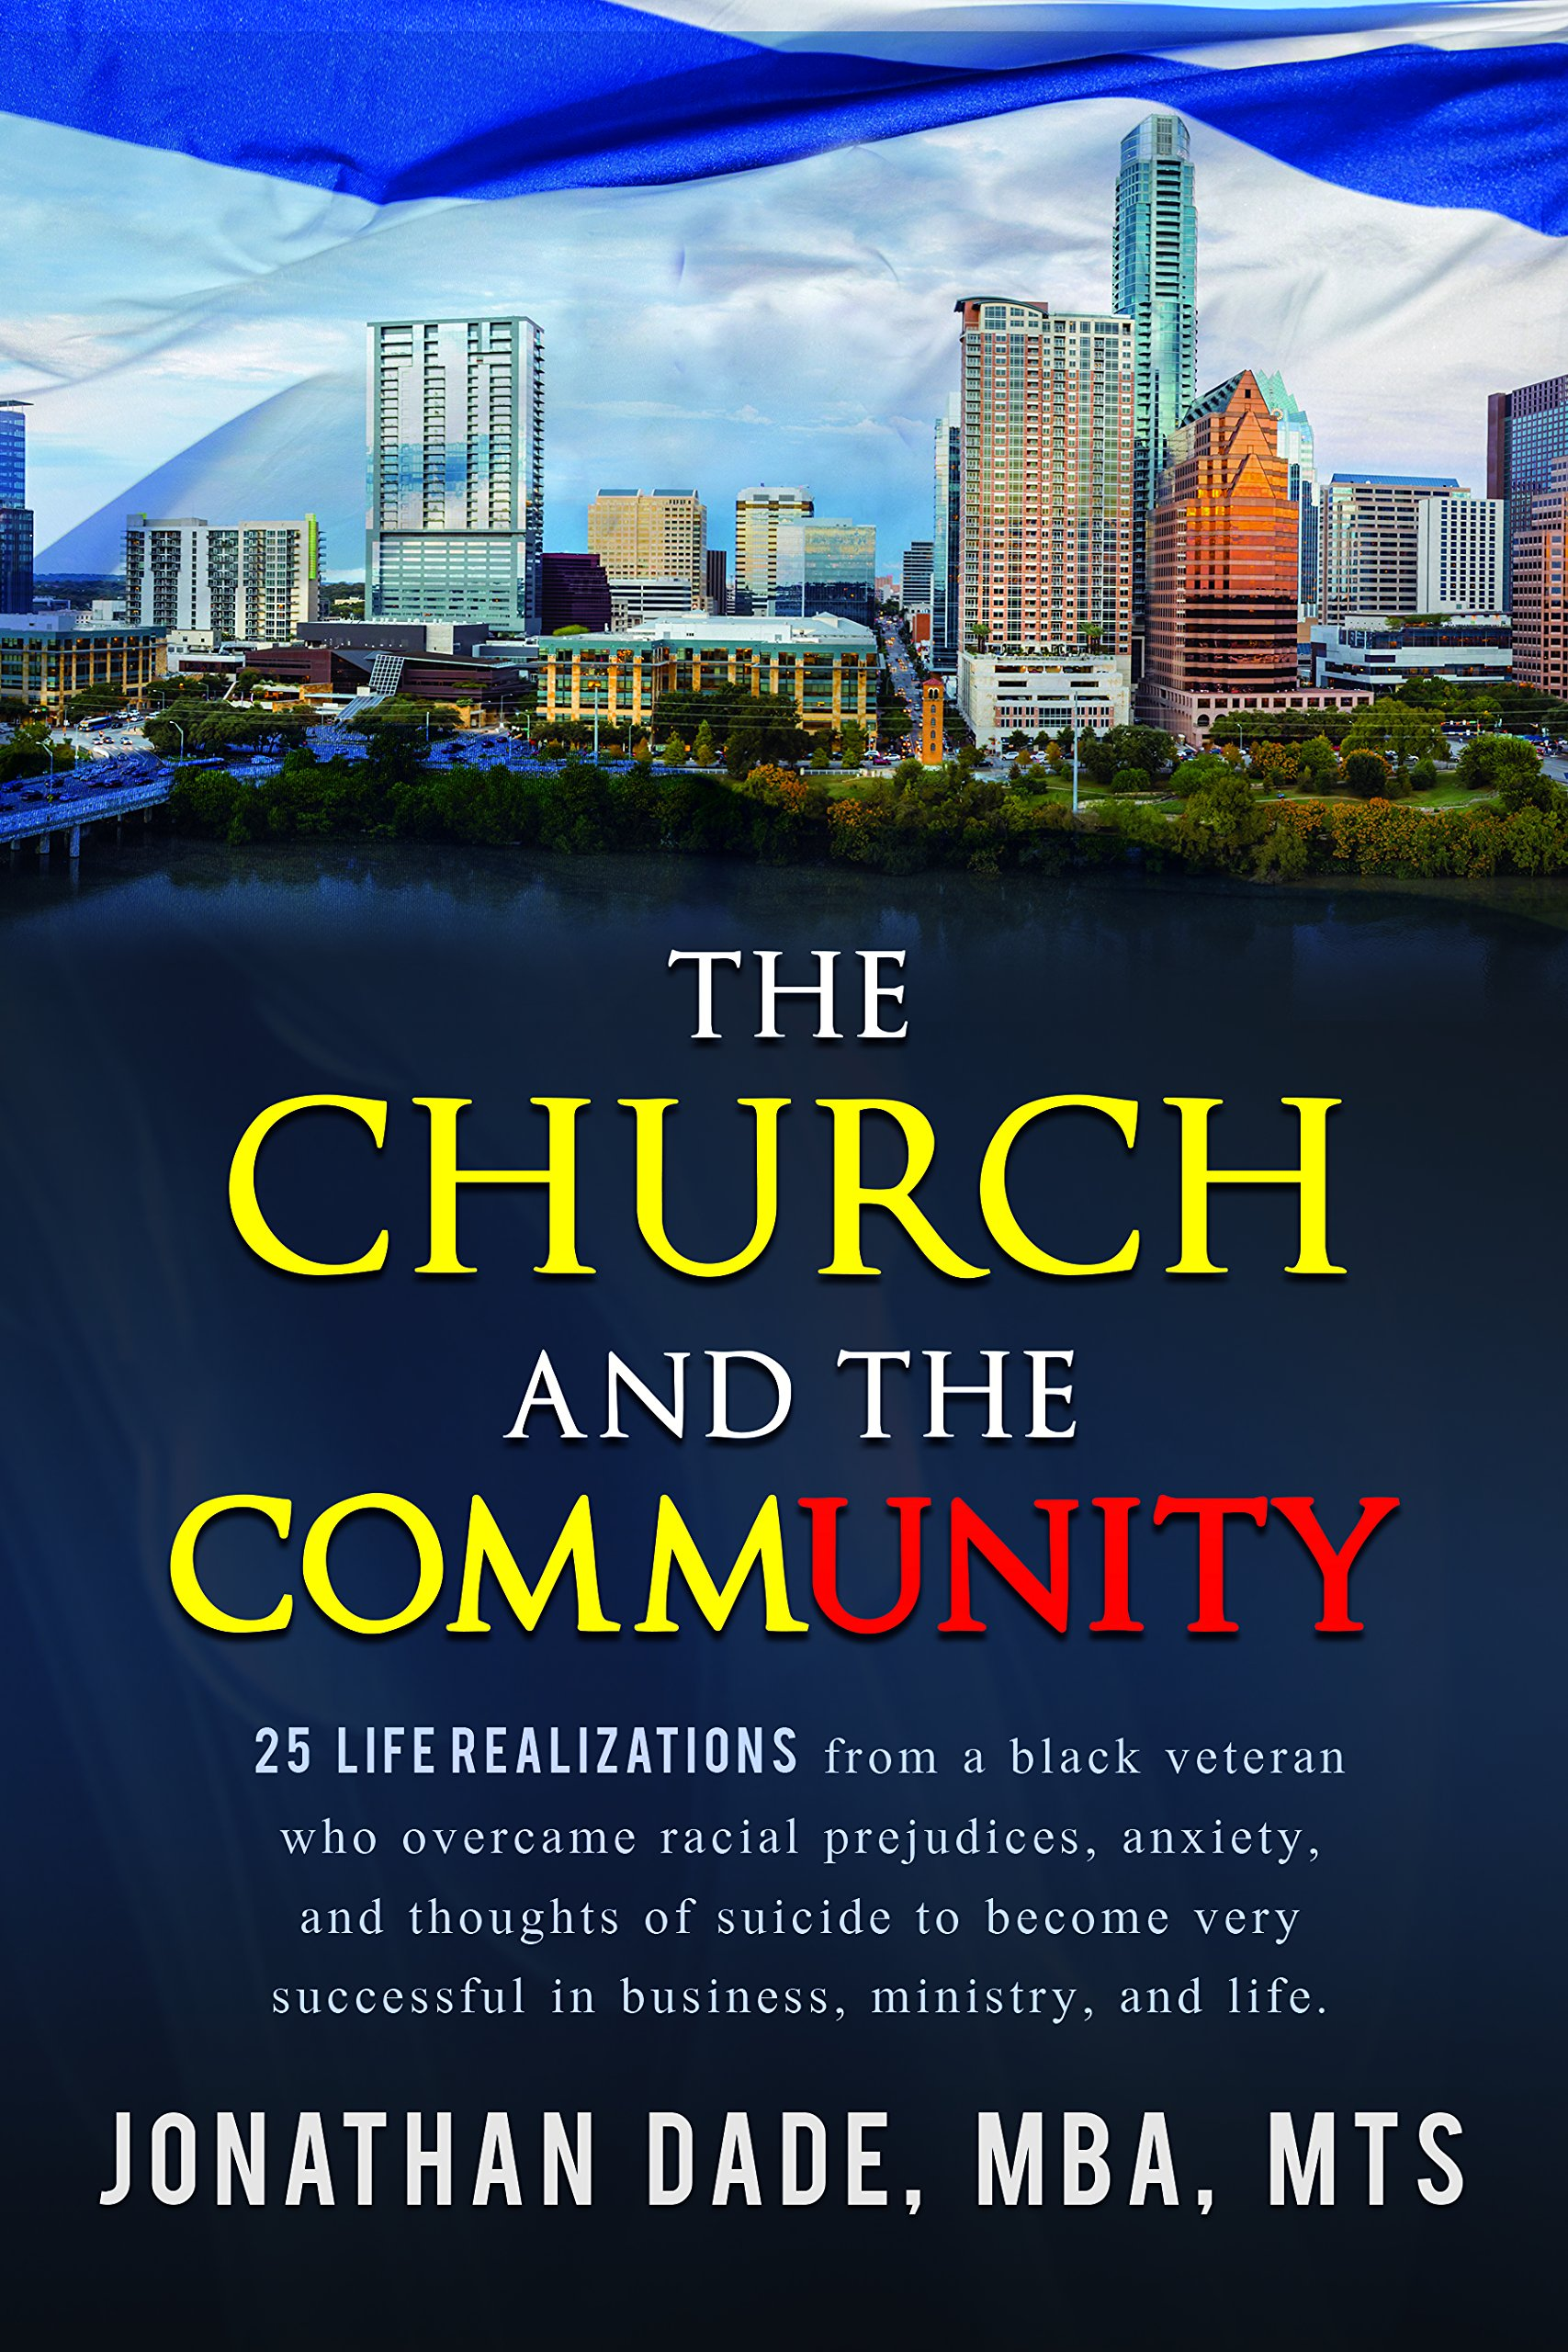 Download The Church and The Community: 25 Life Realizations from a black veteran who overcame racial prejudices, anxiety, and thoughts of suicide to become very successful in business, ministry, and life PDF